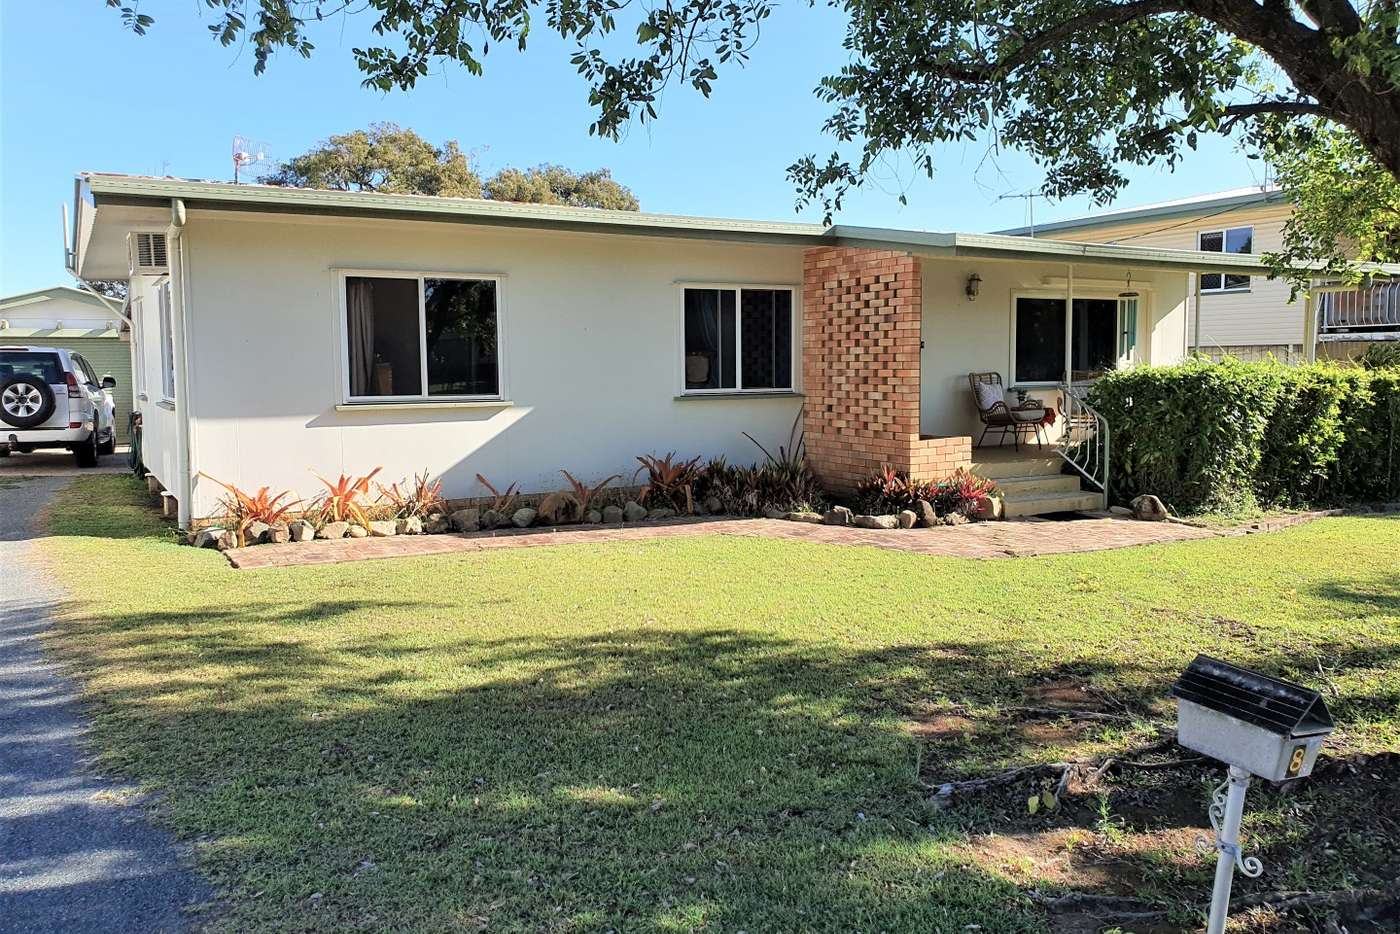 Main view of Homely house listing, 8 Harris Street, Beaconsfield QLD 4740